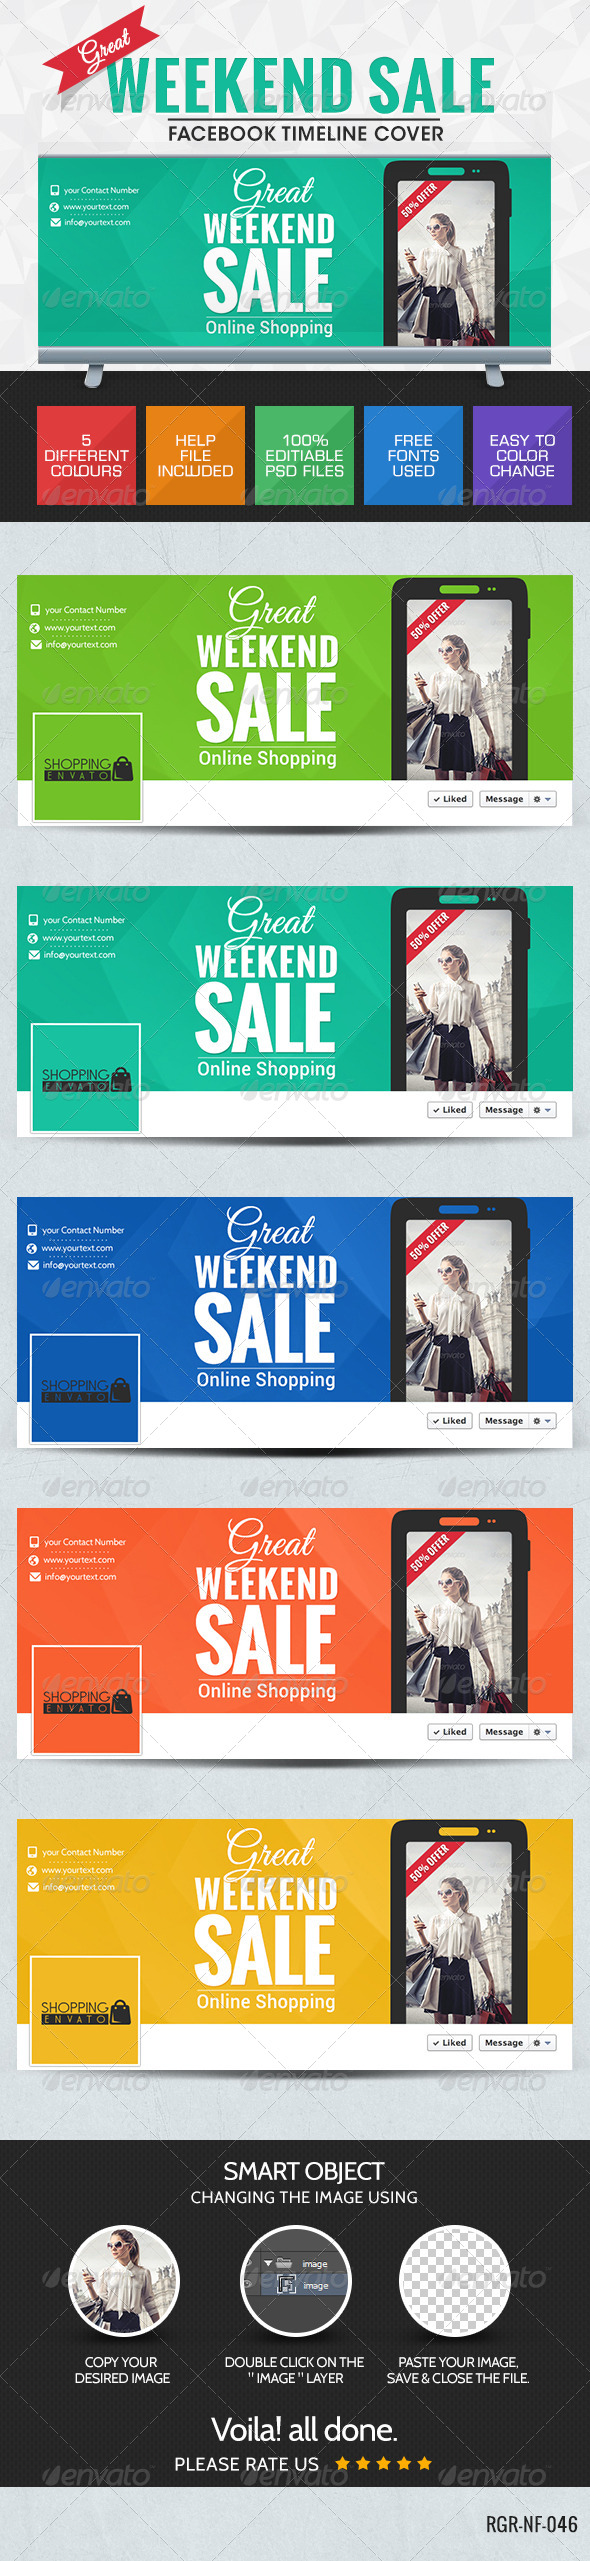 GraphicRiver Weekend Sale Facebook Cover Page 8350623